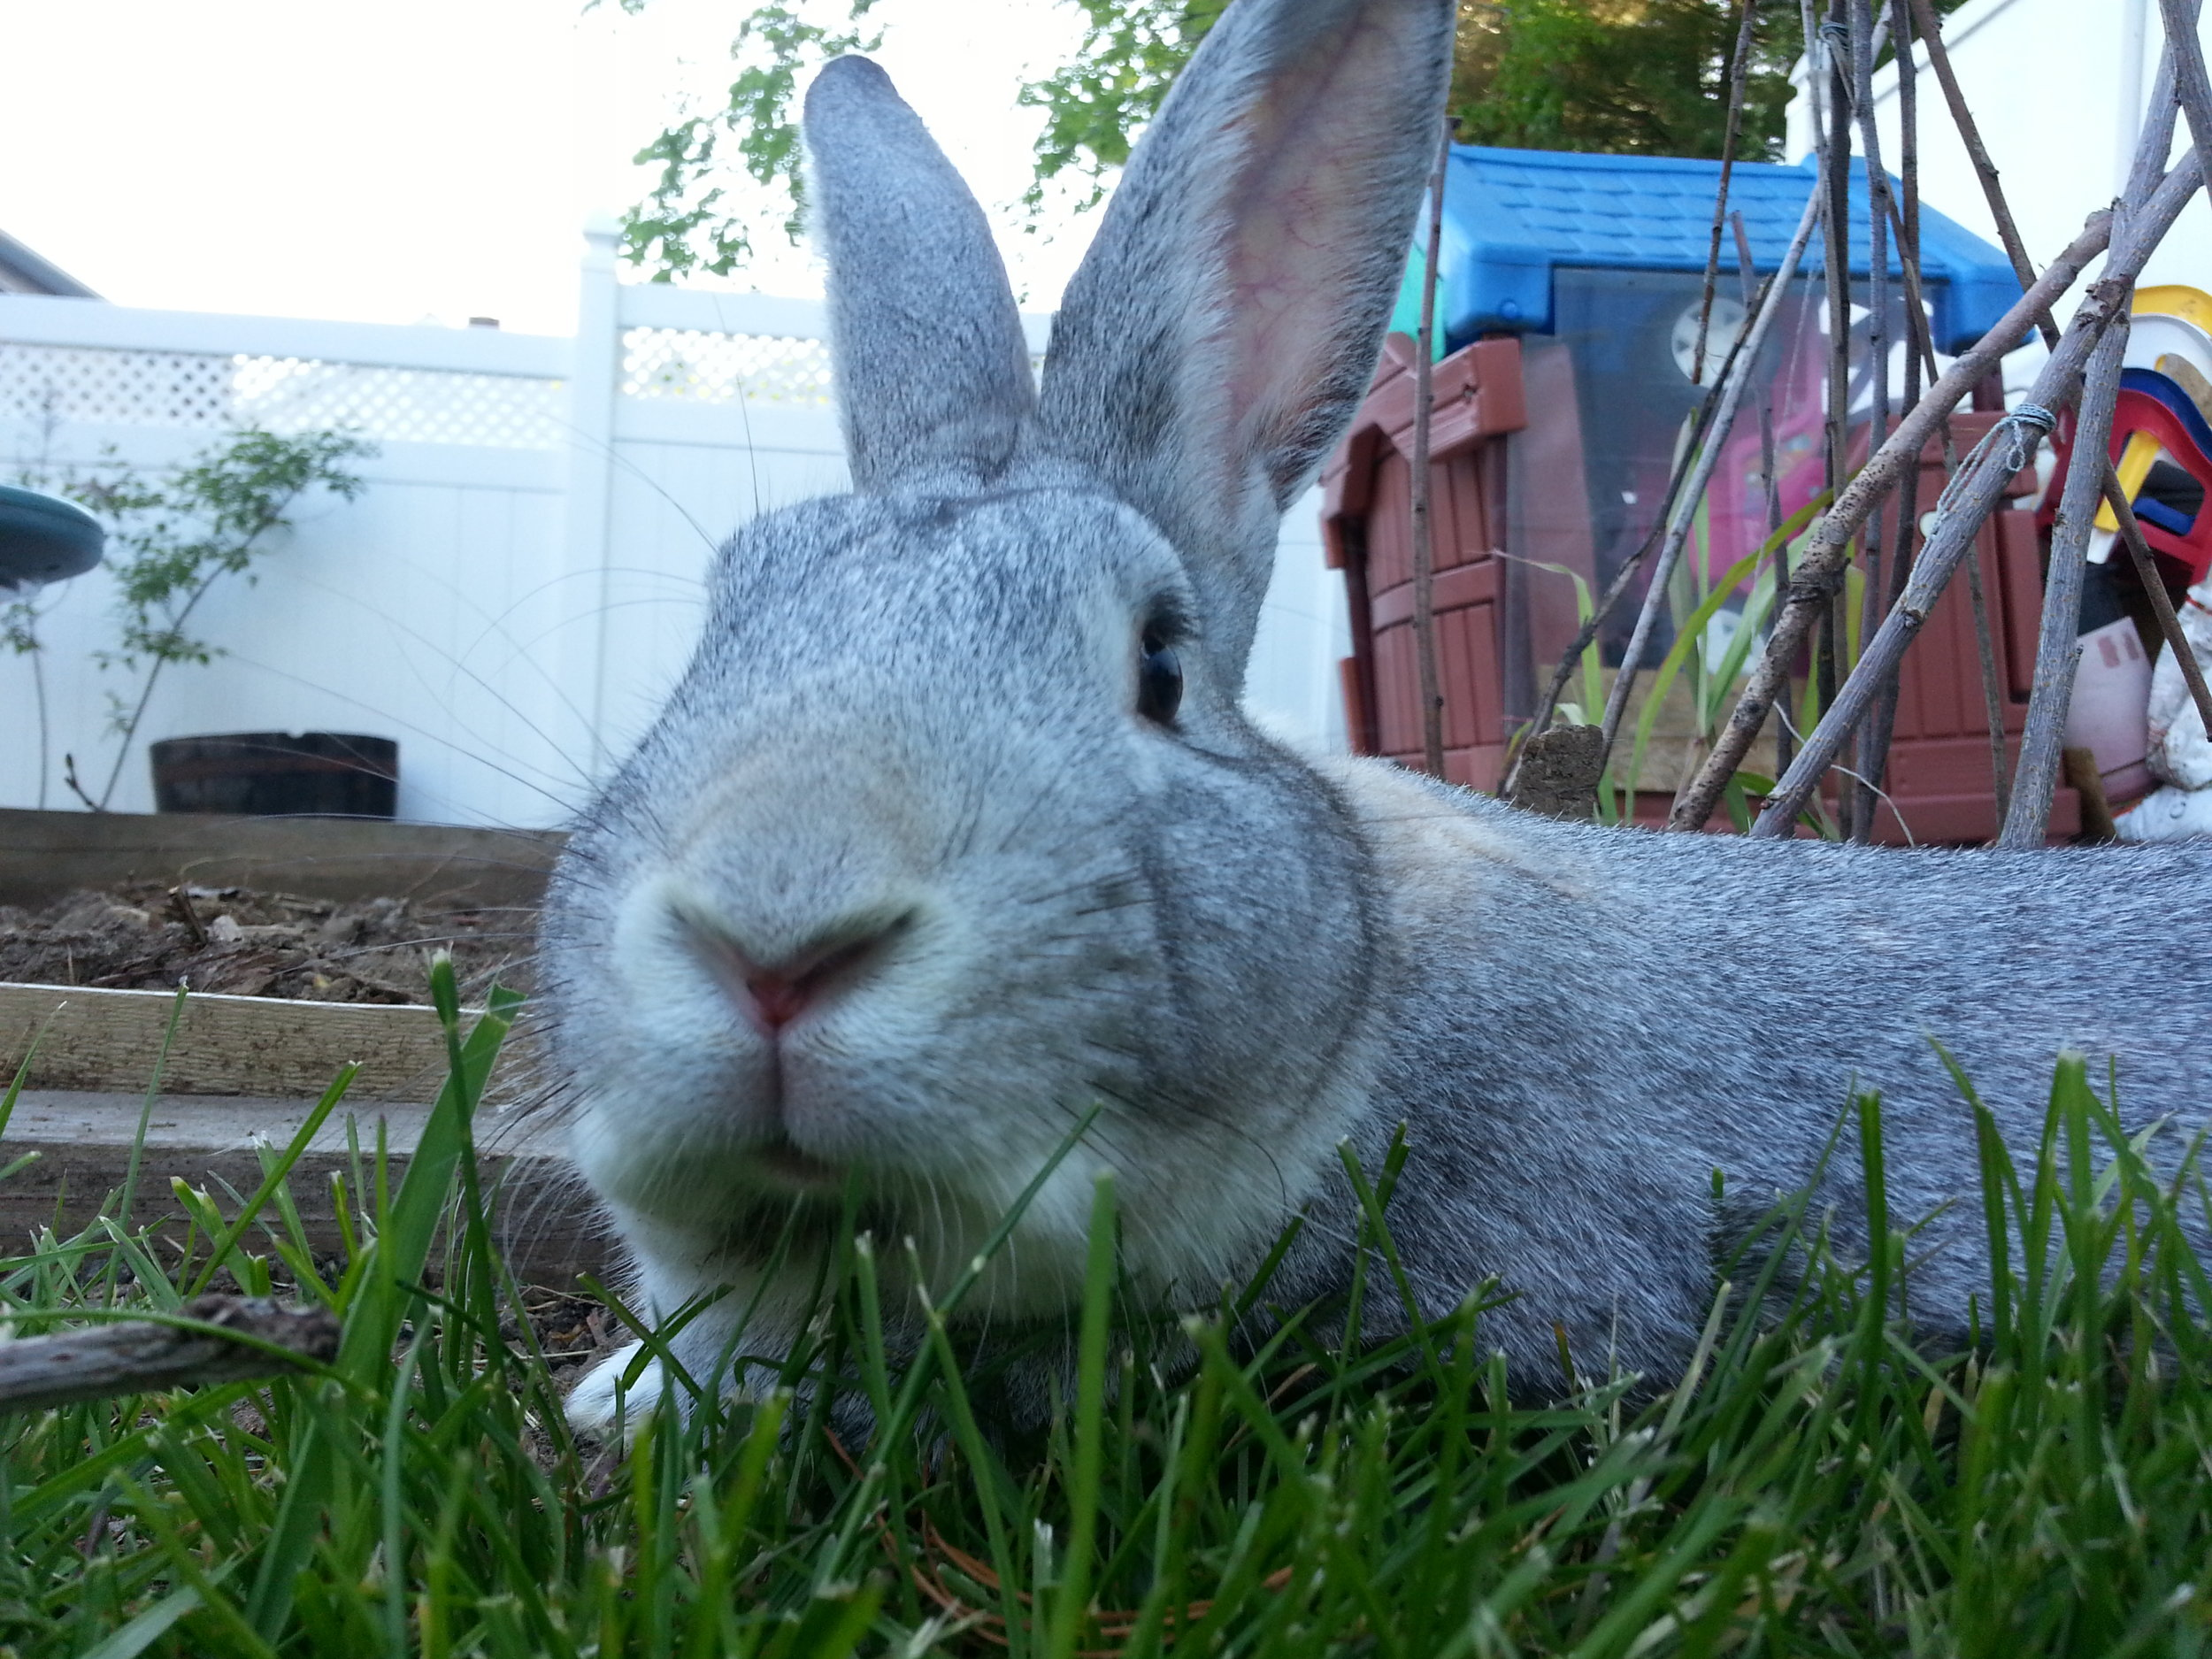 After a Brief Rest, Bunny Gets Back to Exploring the Backyard 2